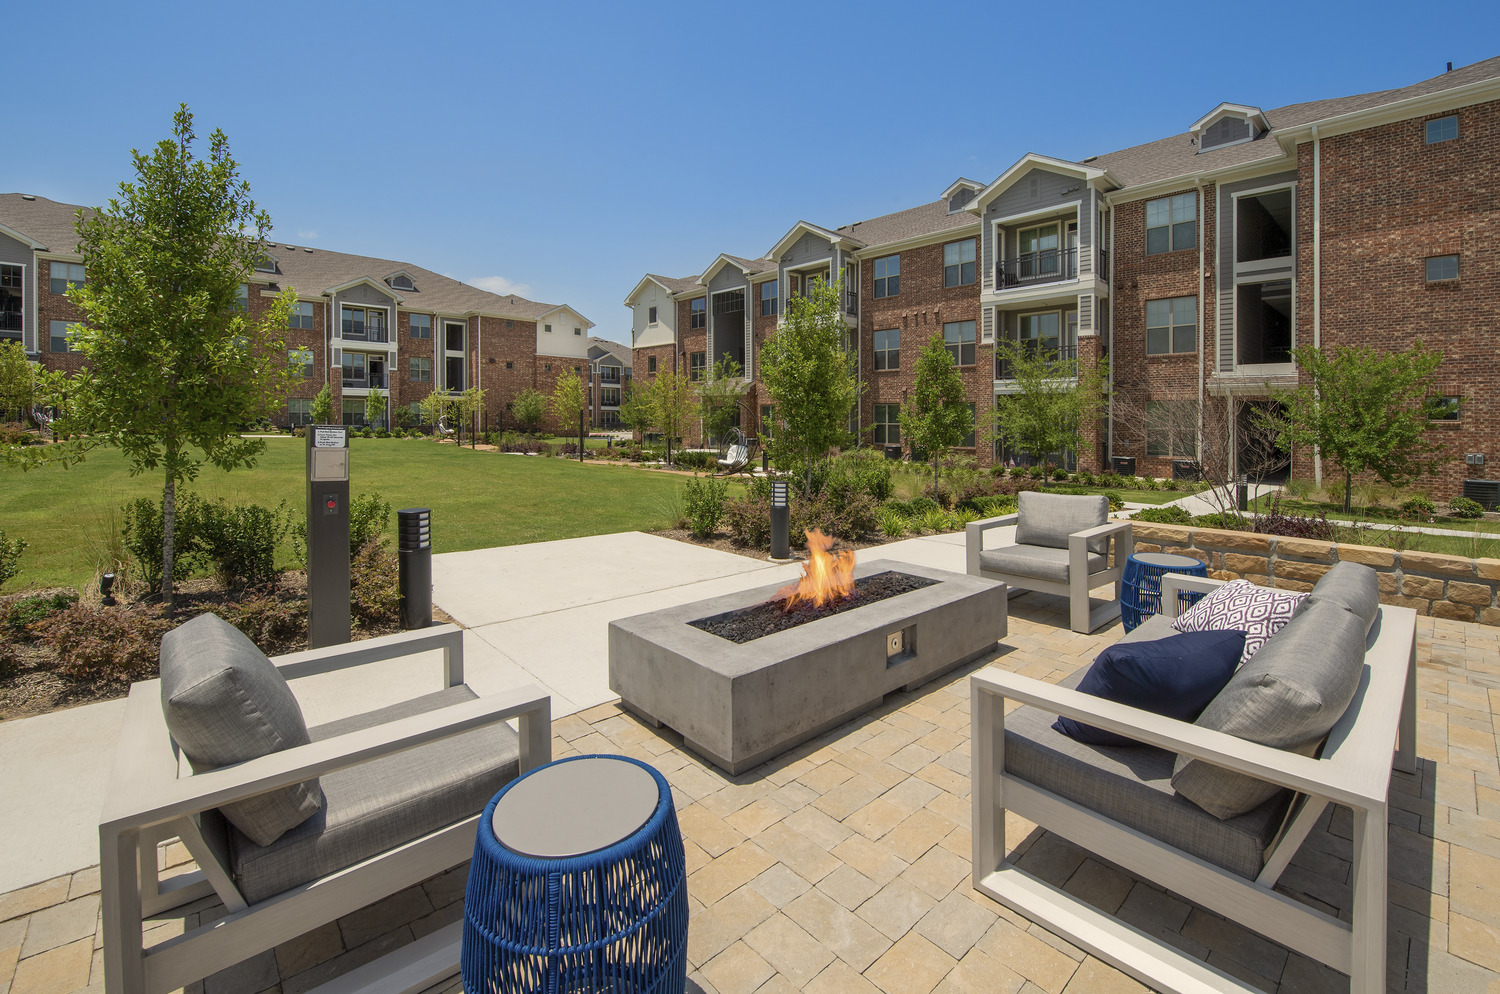 CBG builds Copper Ridge Phase III, a Three-Story, 168-Unit Apartment Community Across Eight Buildings in Roanoke, TX - Image #4